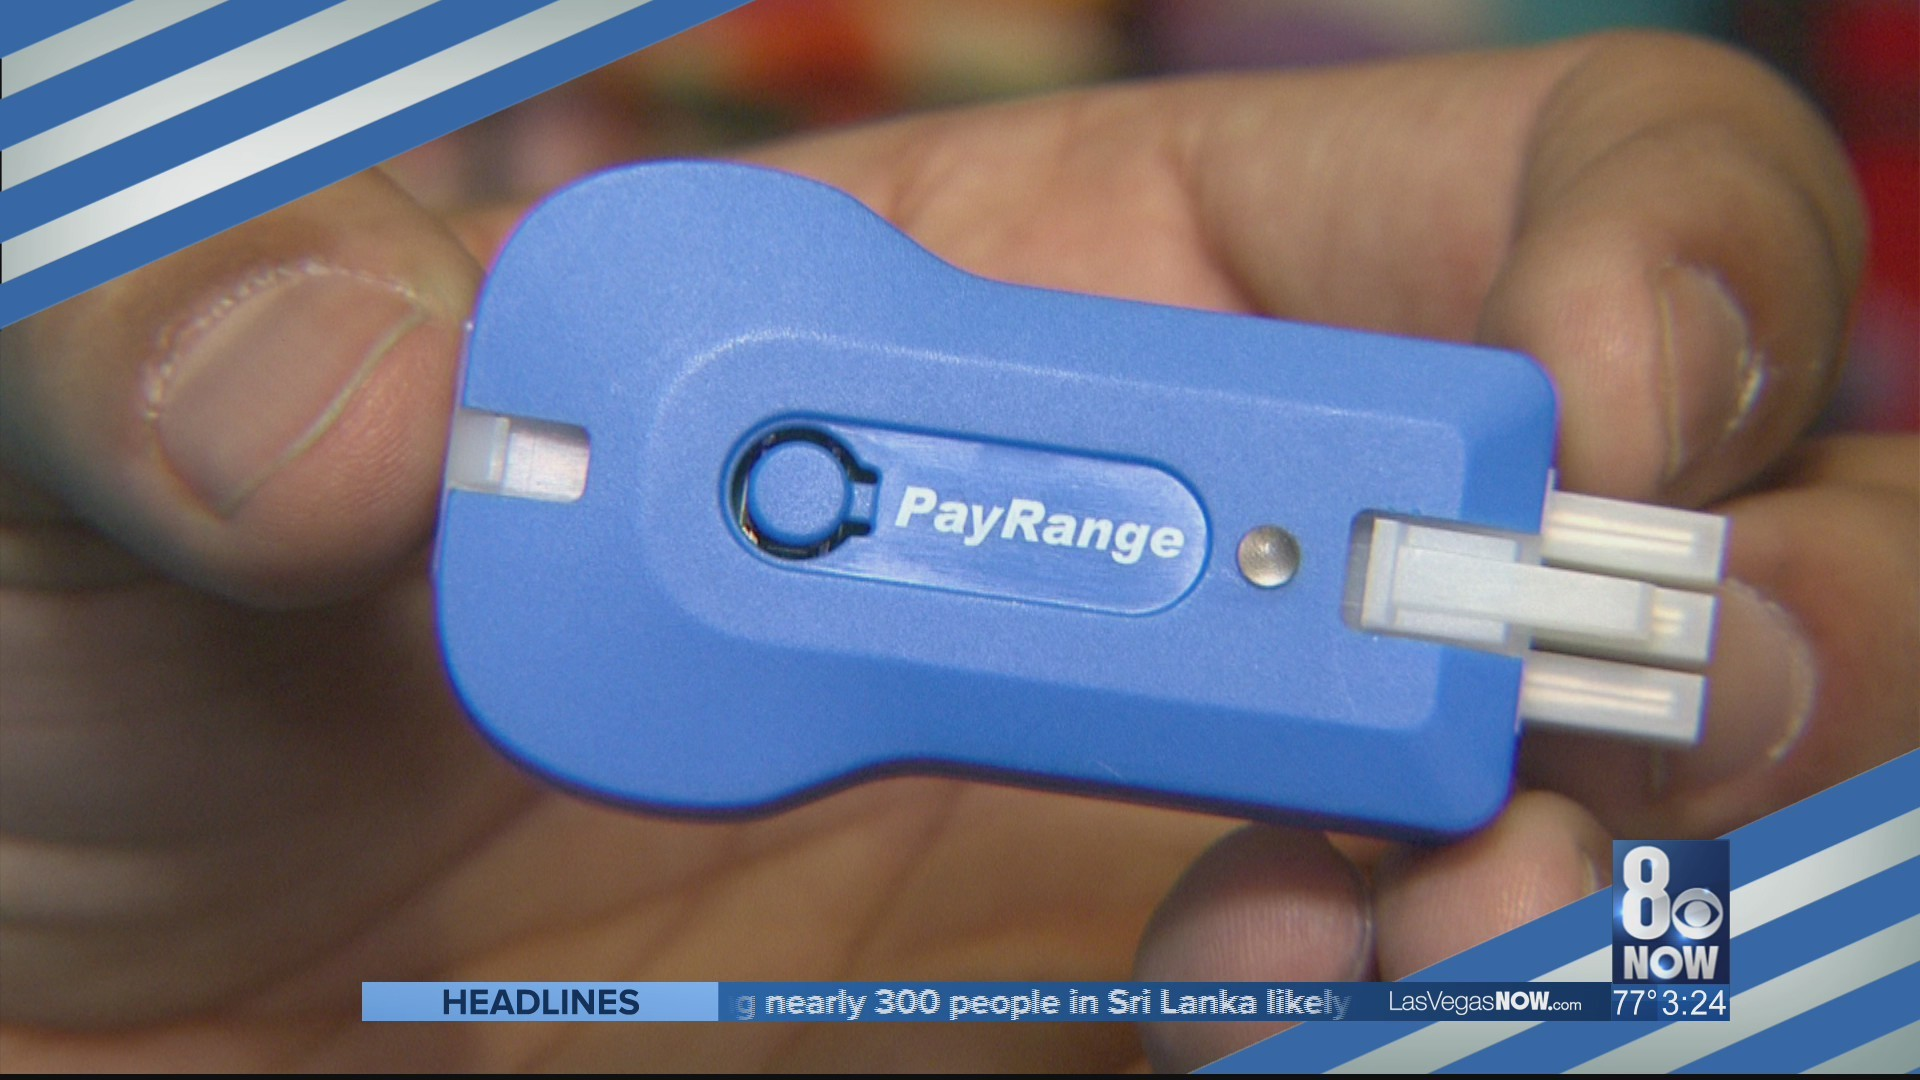 Easy mobile payments to people or machines with PayRange